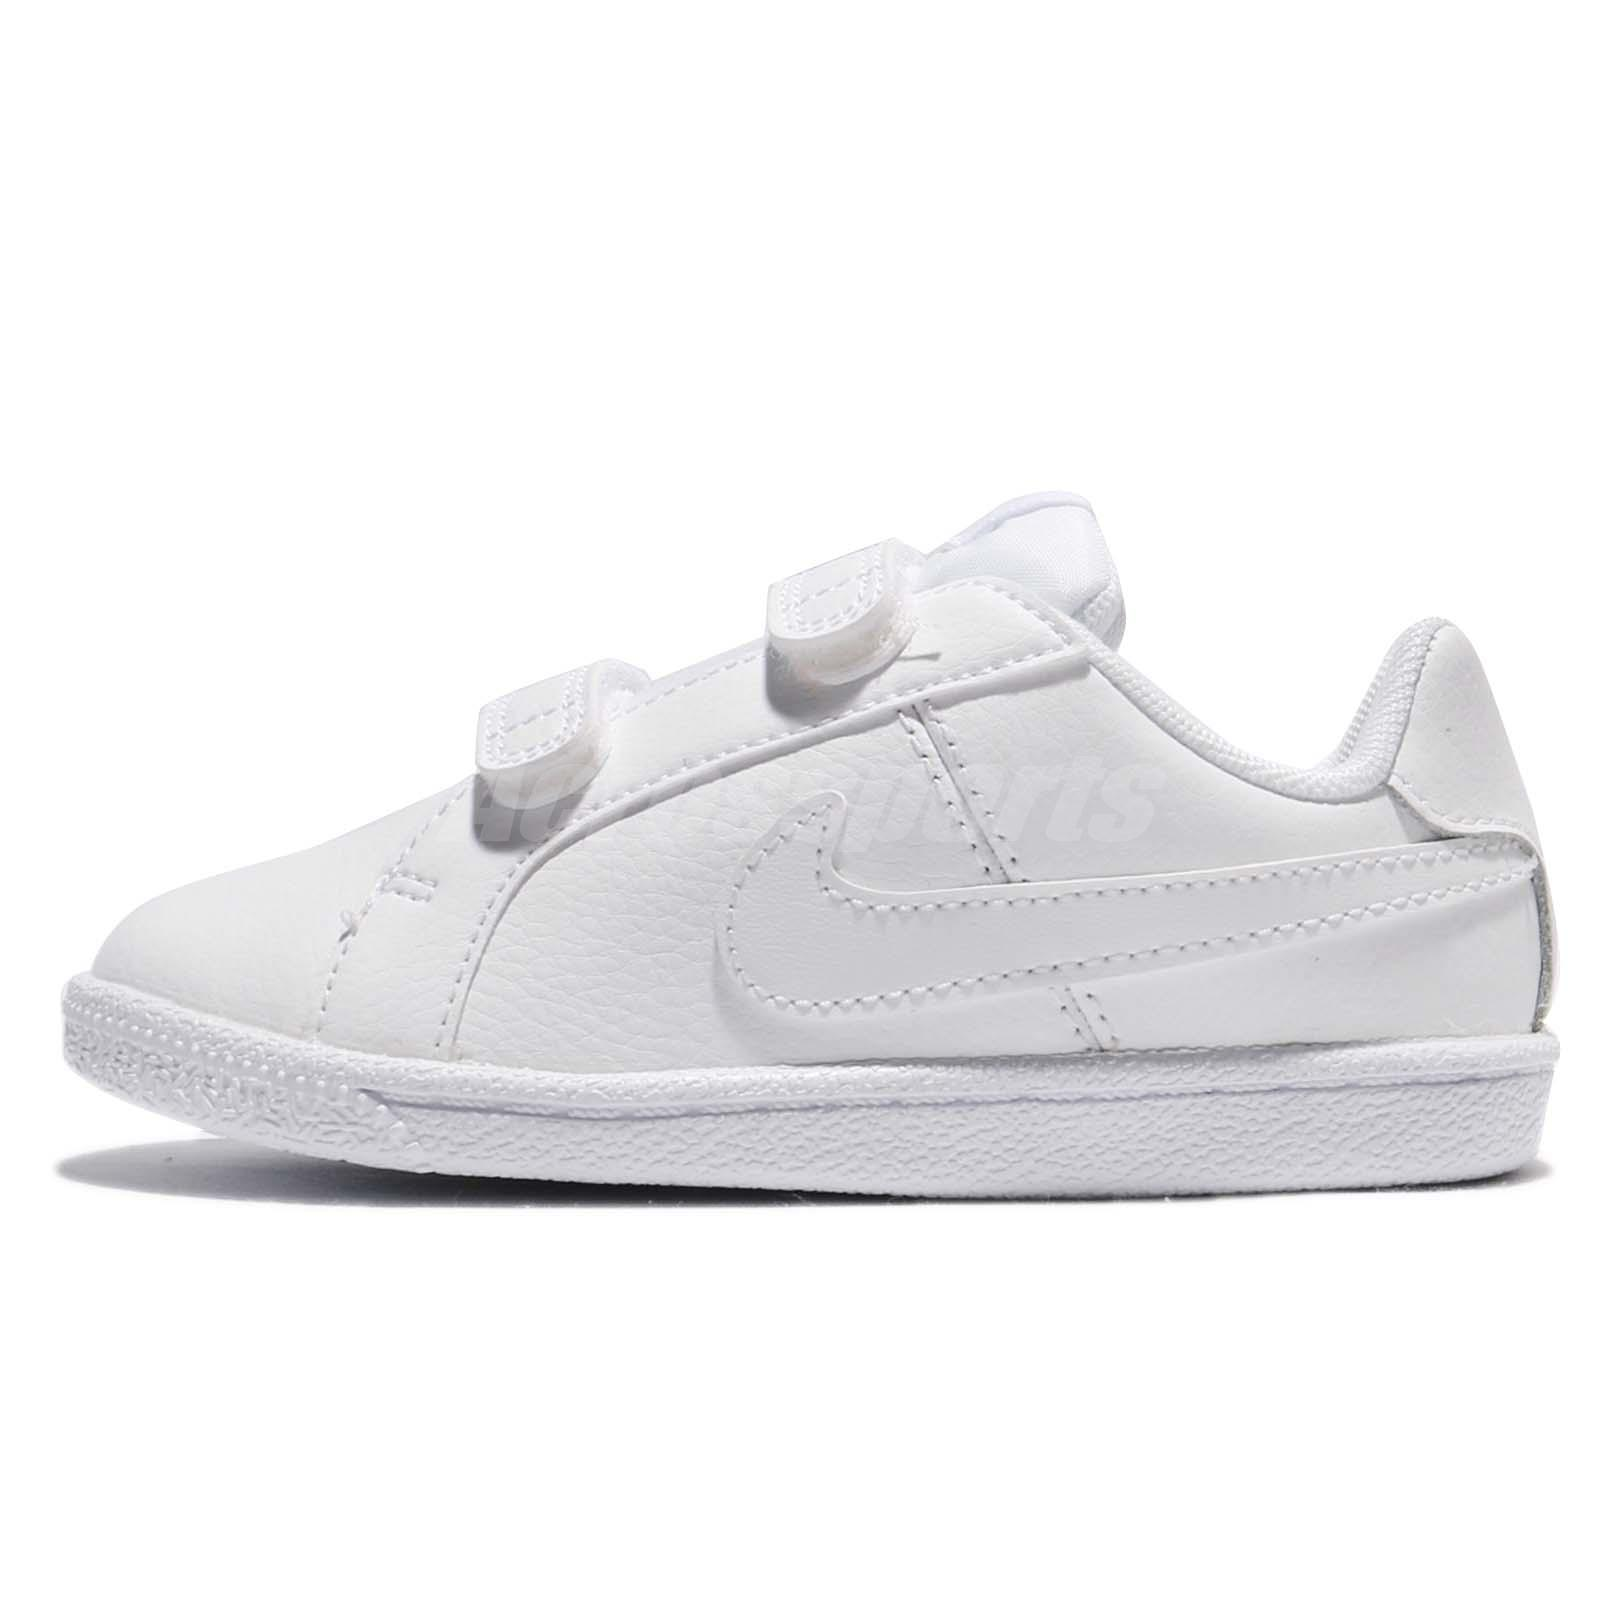 Nike Court Royale TDV Triple White Leather Toddler Infant Baby Shoes